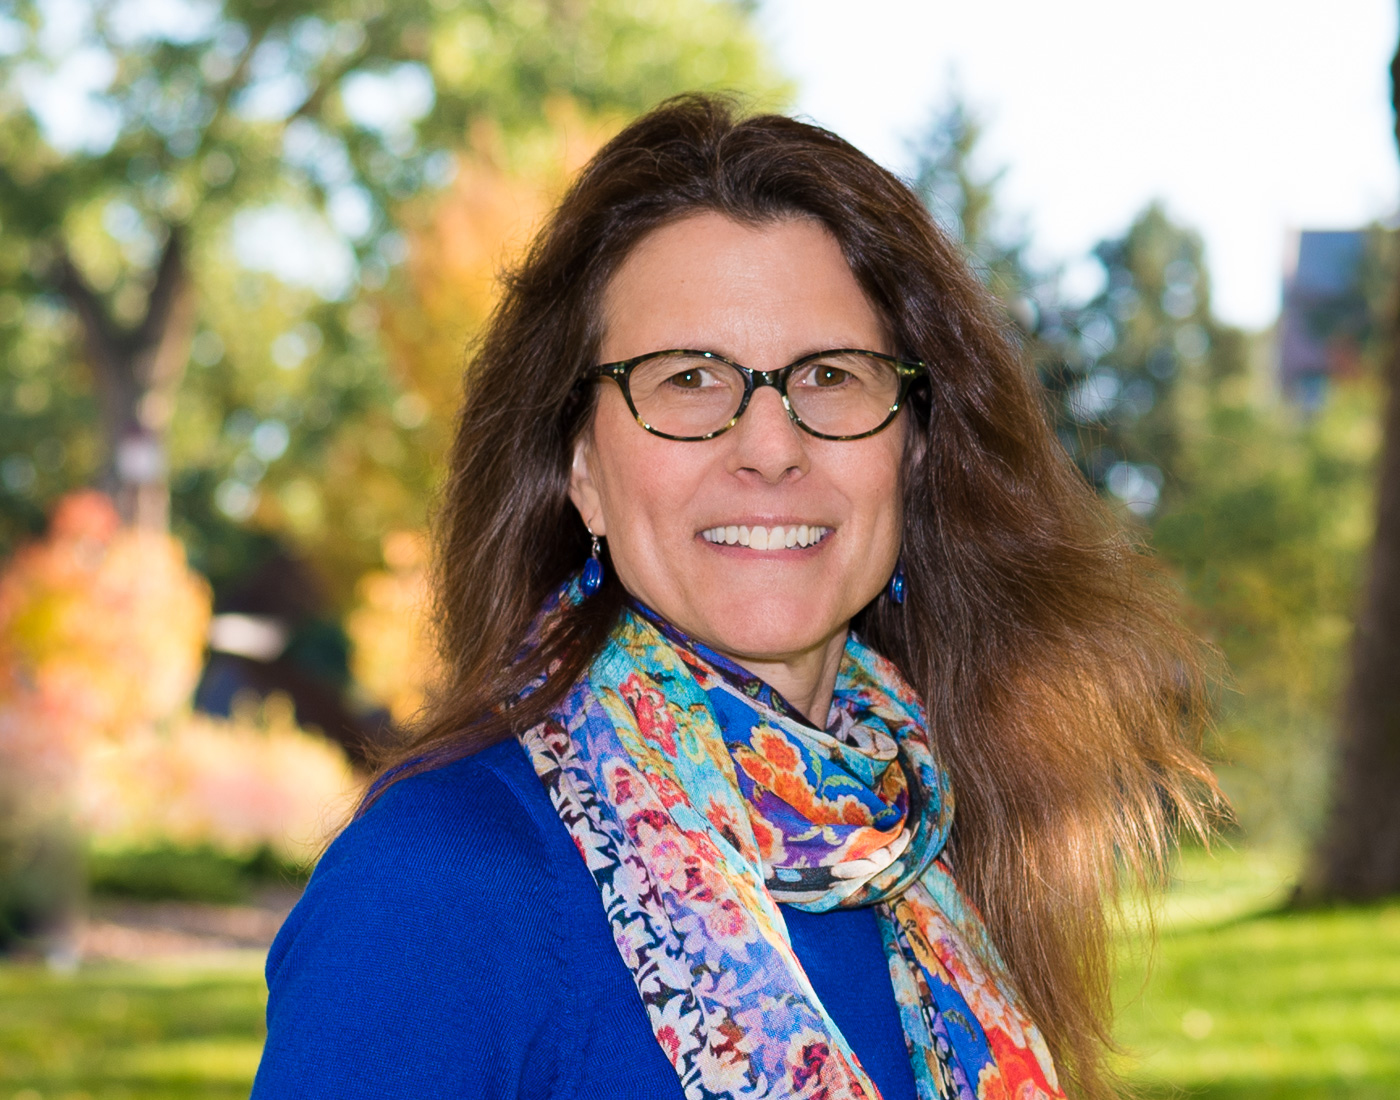 Stacey Freedenthal, PhD, LCSW - Dr. Freedenthal is a Denver psychotherapist, consultant, and associate professor at the University of Denver Graduate School of Social Work. She has extensive clinical experience in crisis and suicide prevention settings. Her book,Helping the Suicidal Person: Tips and Techniques for Professionals, was published in September 2017 by Routledge, an imprint of Taylor & Francis. She is also the creator of speakingofsuicide.com, a site for suicidal individuals and their loved ones, survivors, mental health professionals, and the merely curious.